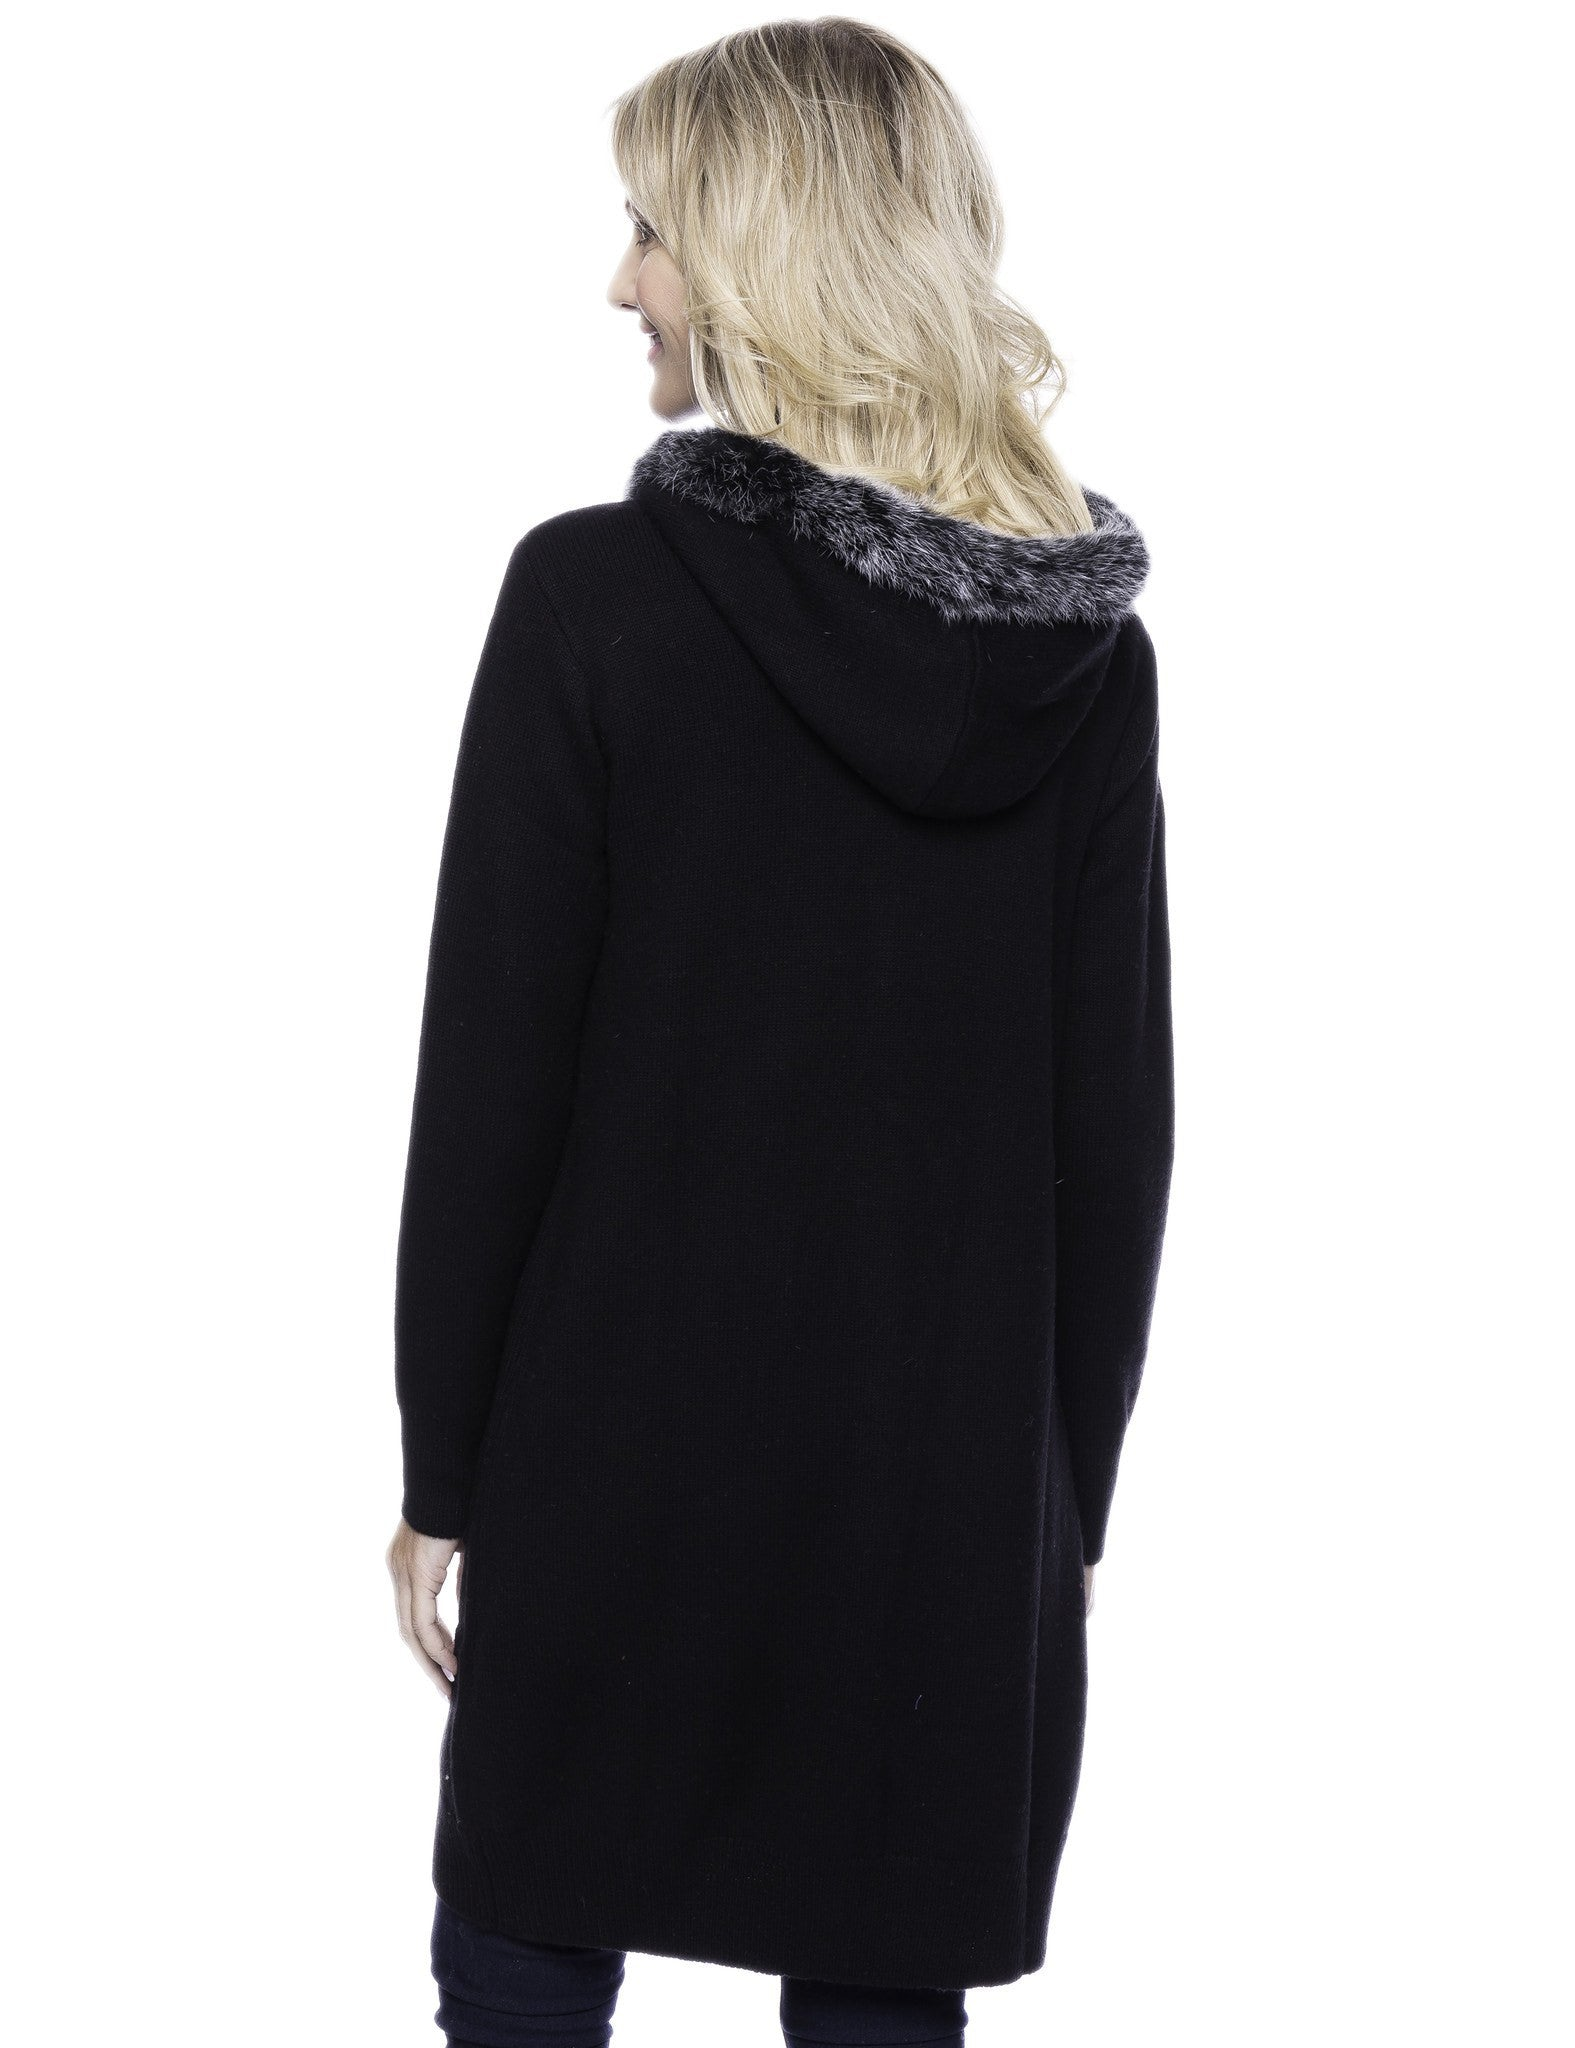 Tocco Reale Women's Wool Blend Zip Cardigan with Fur Trim Hood - Black